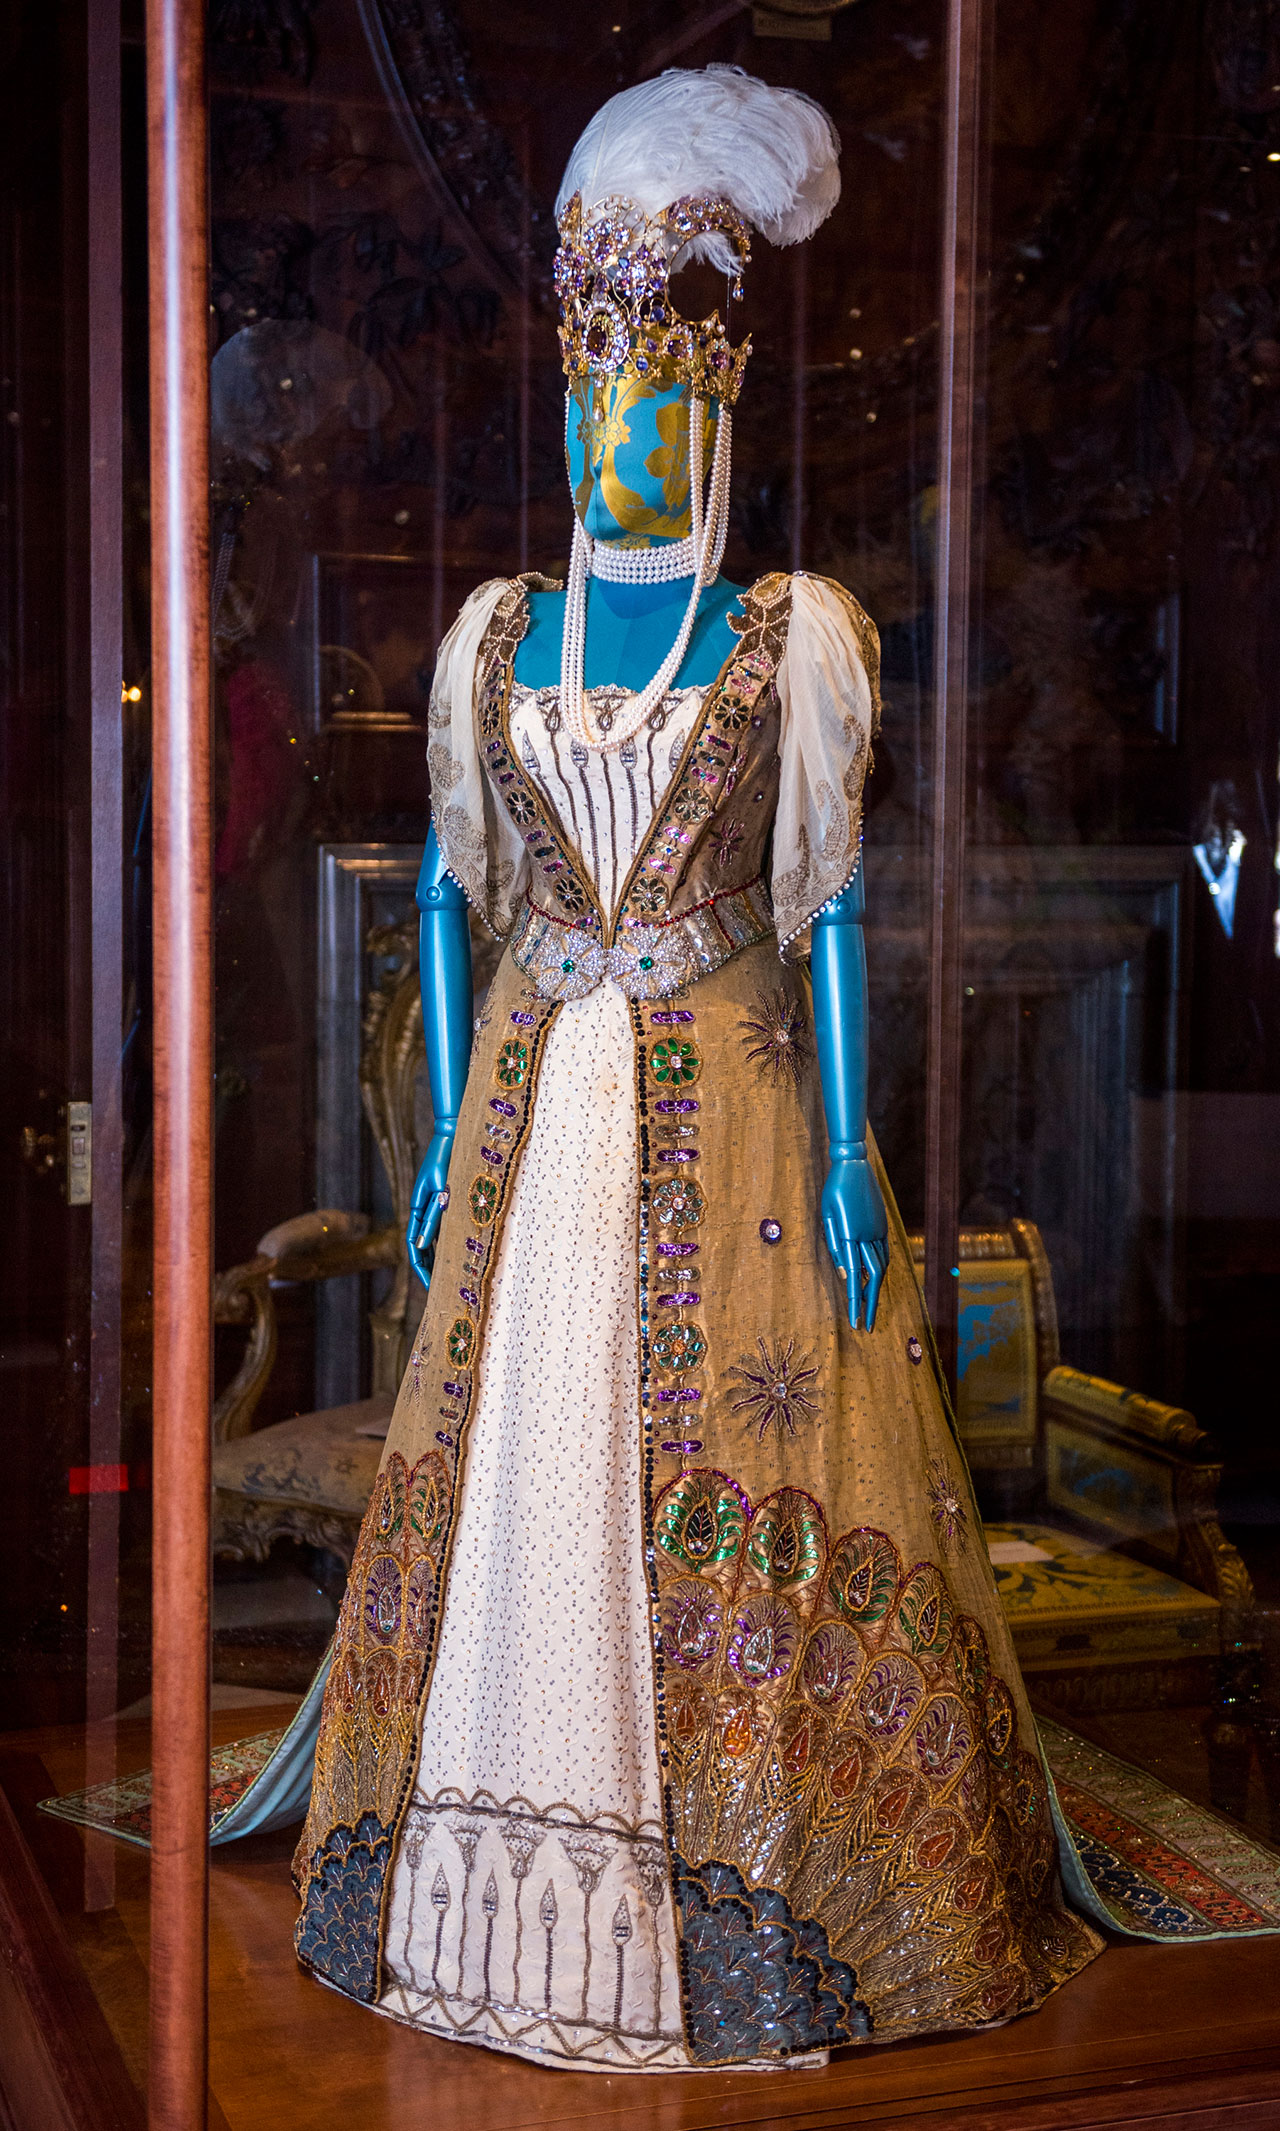 Duchess Louise's Worth dress from the Devonshire House Ball, one of more than 100 dresses spanning 500 years of history at Chatsworth House Style. Photo courtesy Chatsworth House Trust.